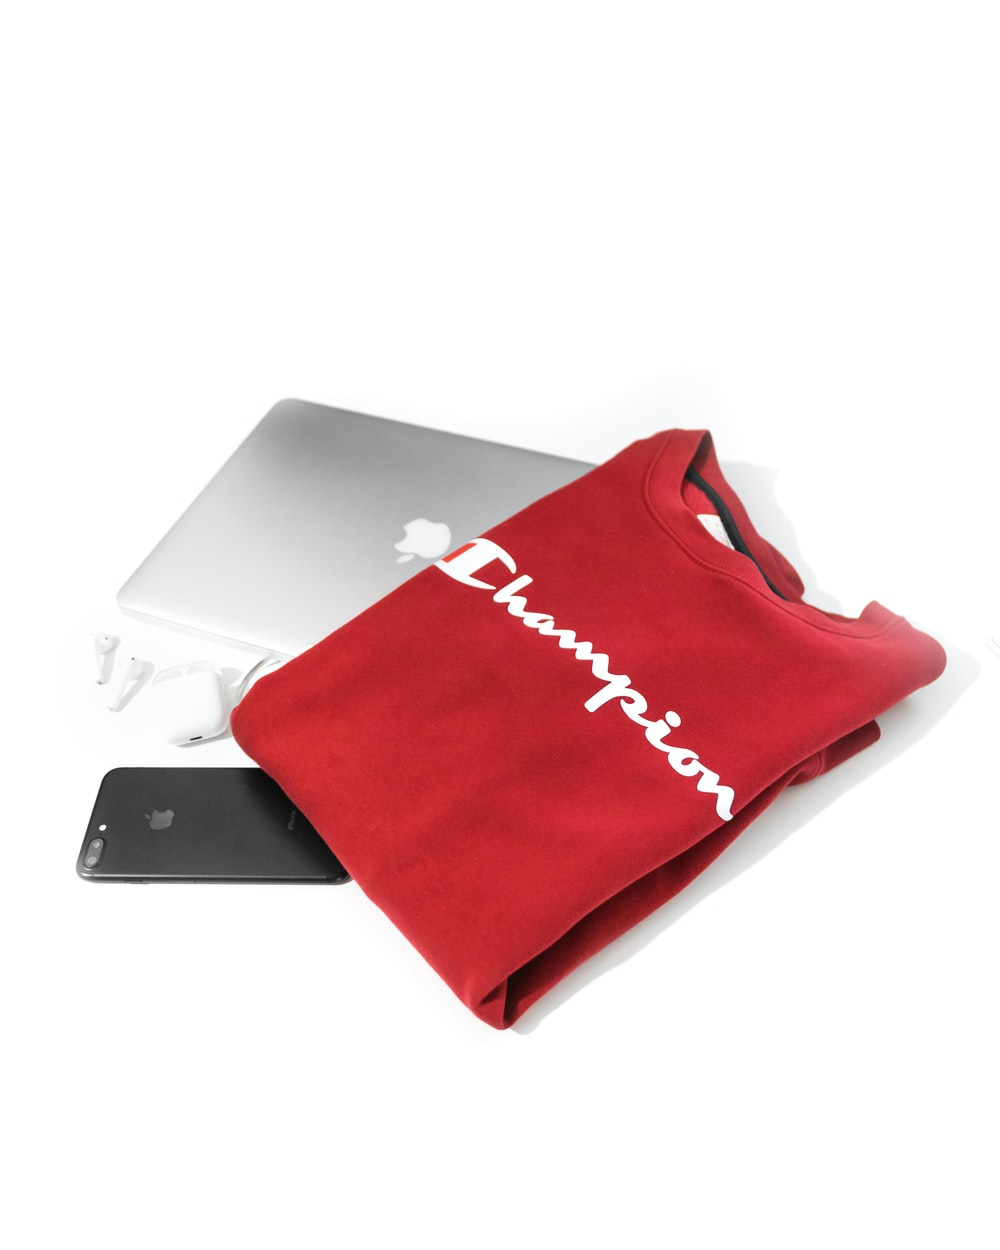 red and white Champion shirt on MacBook